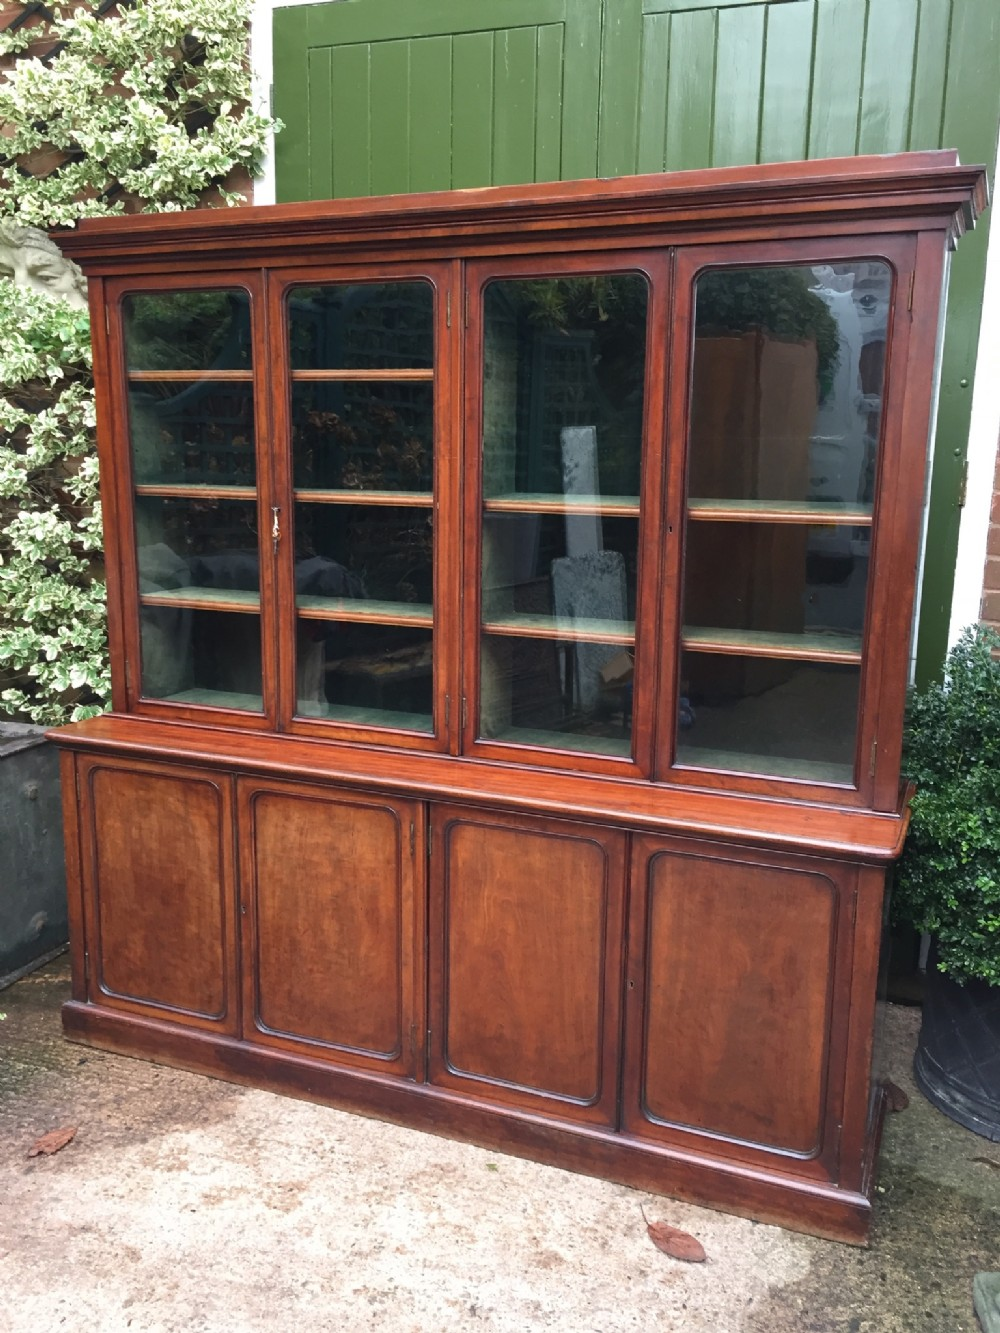 fine quality early c19th mahogany 4door library bookcase cabinet of elegant and compact proportions